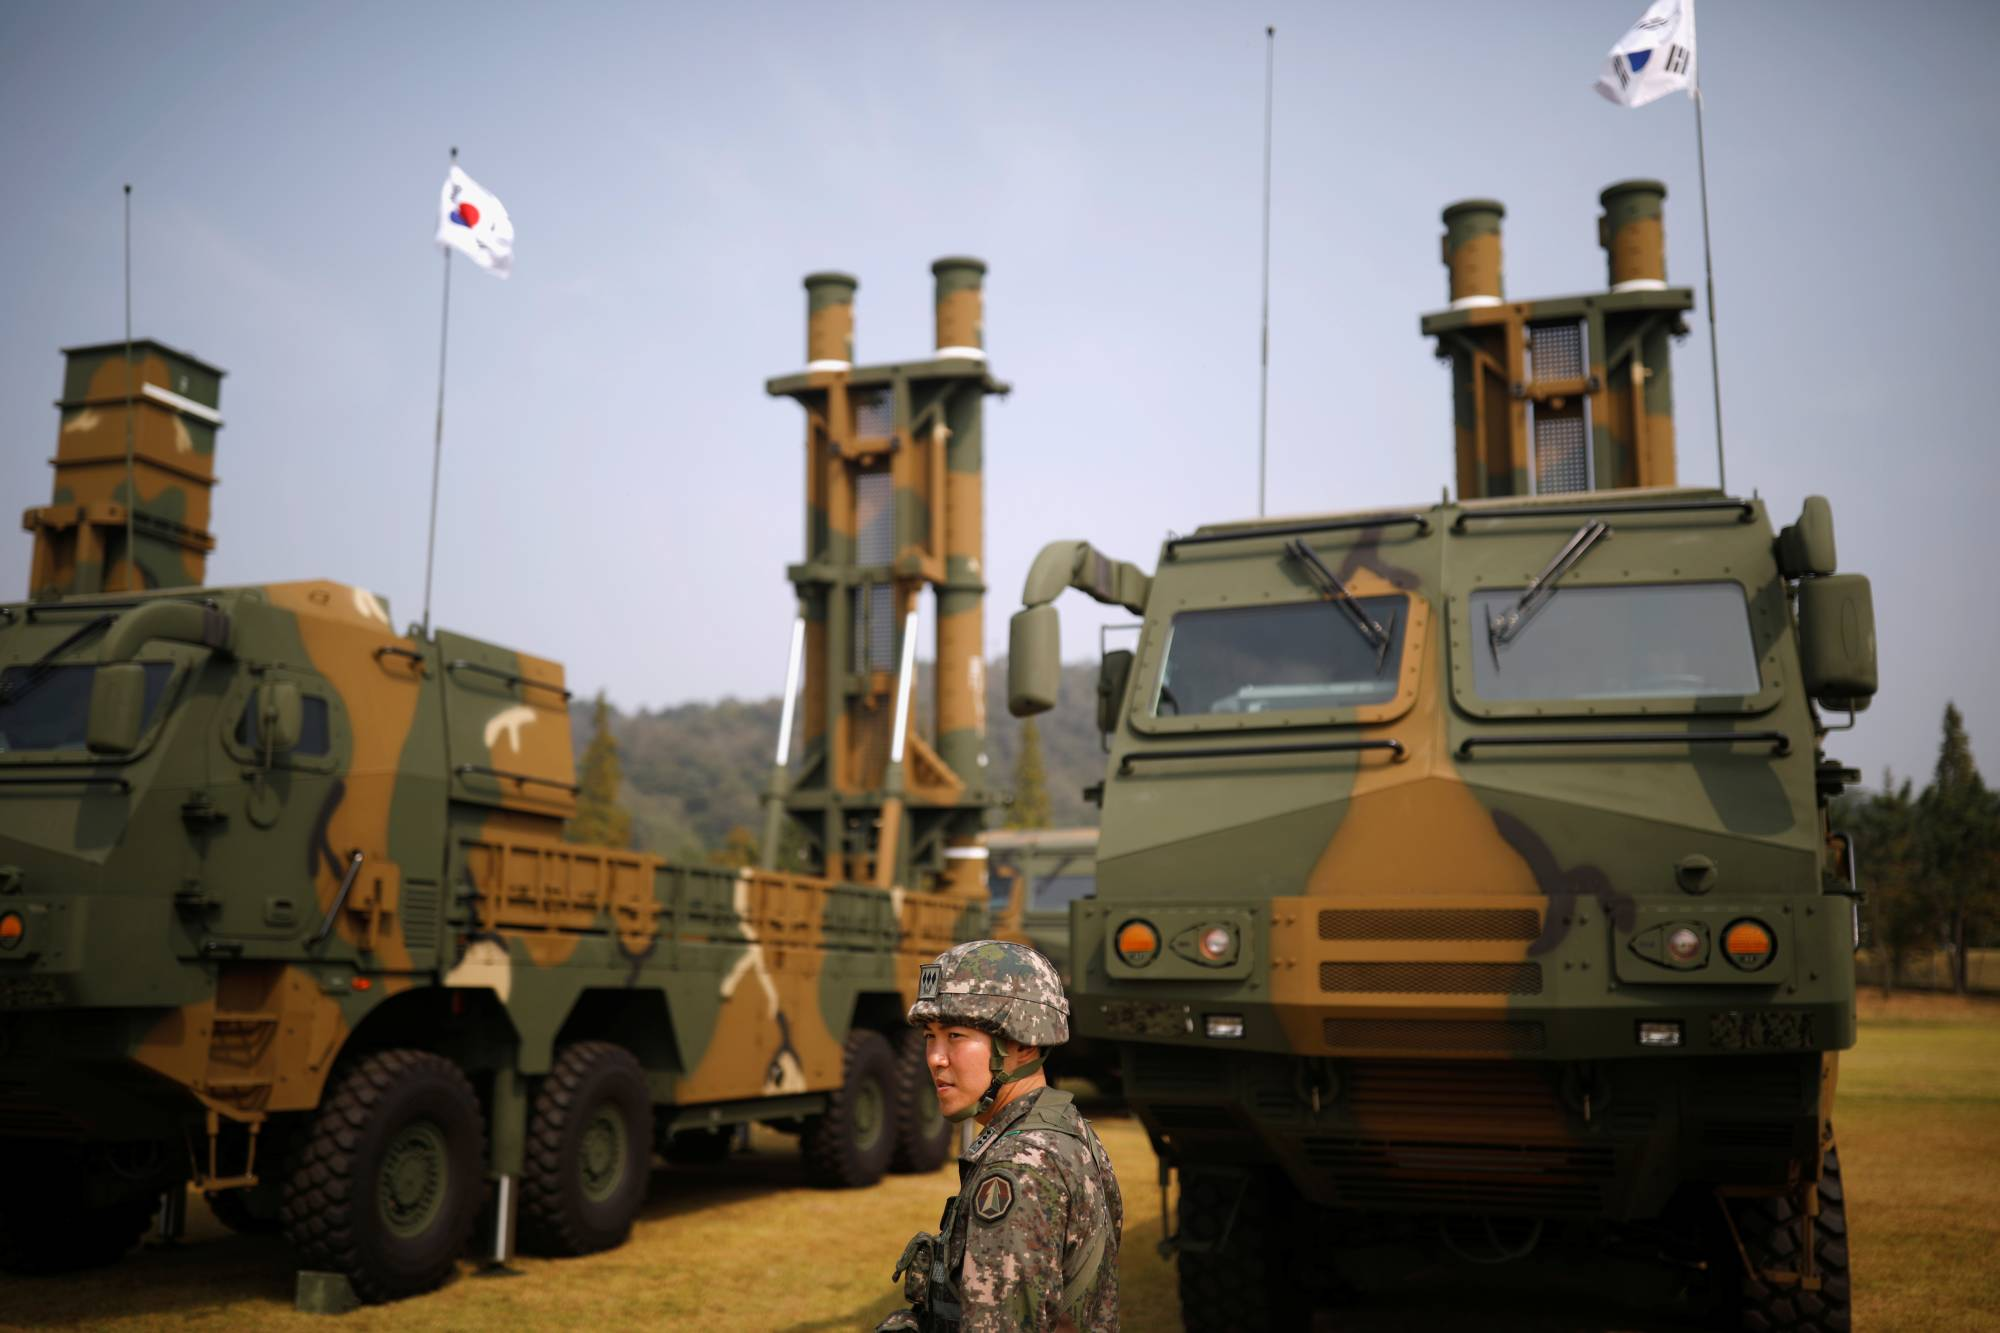 A South Korean soldier walks past Hyunmoo-2 (left) and Hyunmoo-3 ballistic missiles ahead of a celebration to mark the 69th anniversary of Korea Armed Forces Day, in Pyeongtaek, South Korea, in September 2017.    REUTERS